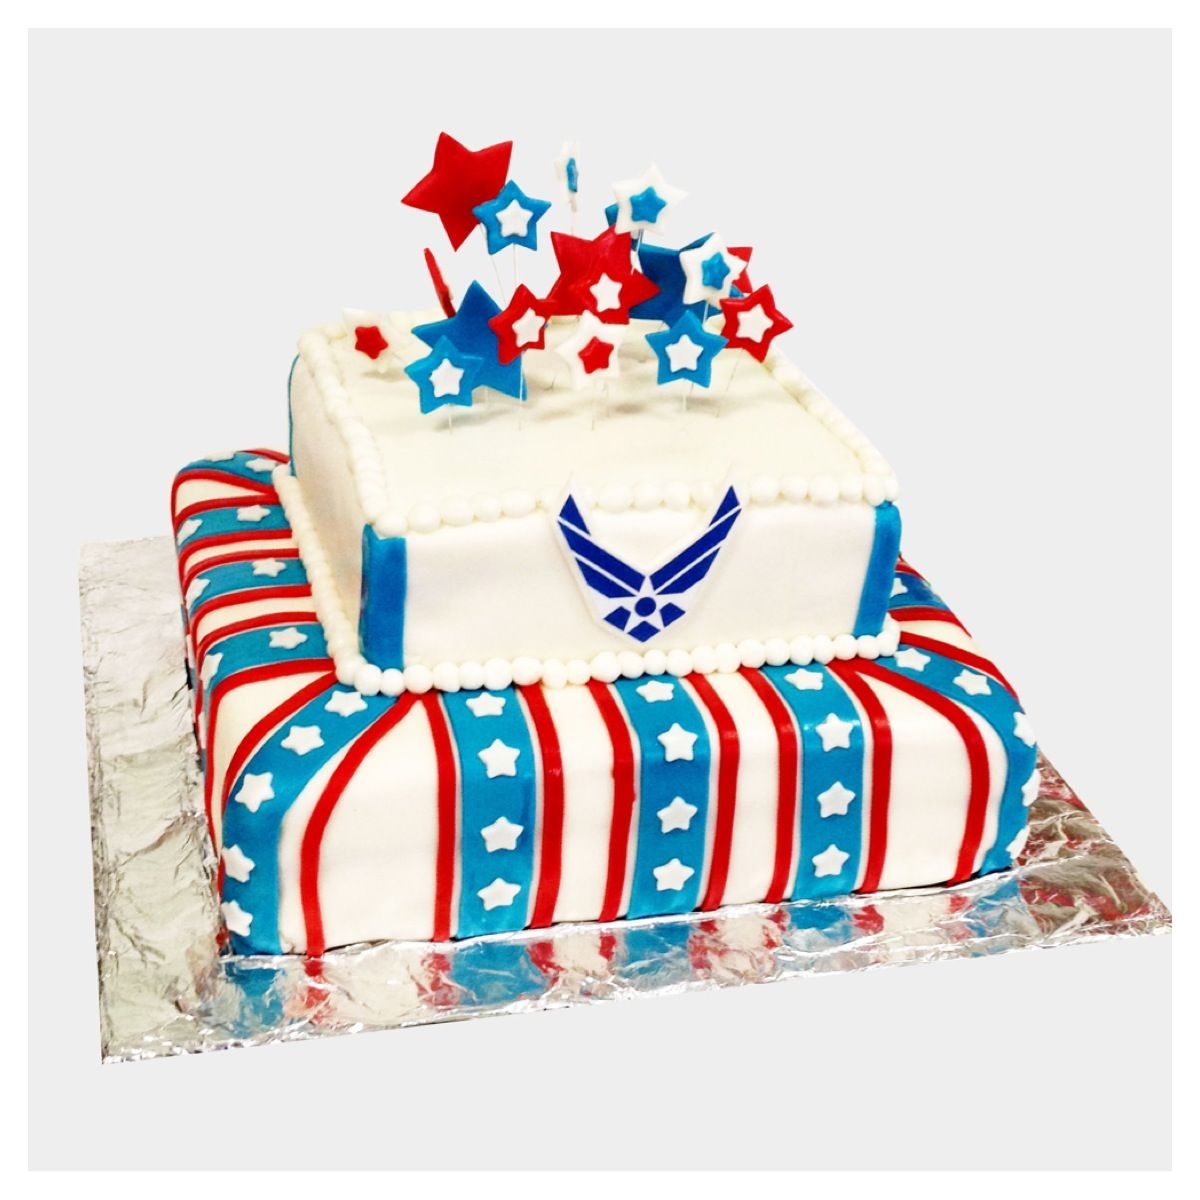 Air force cake decorations home furniture decors creating the - Air Force Cake